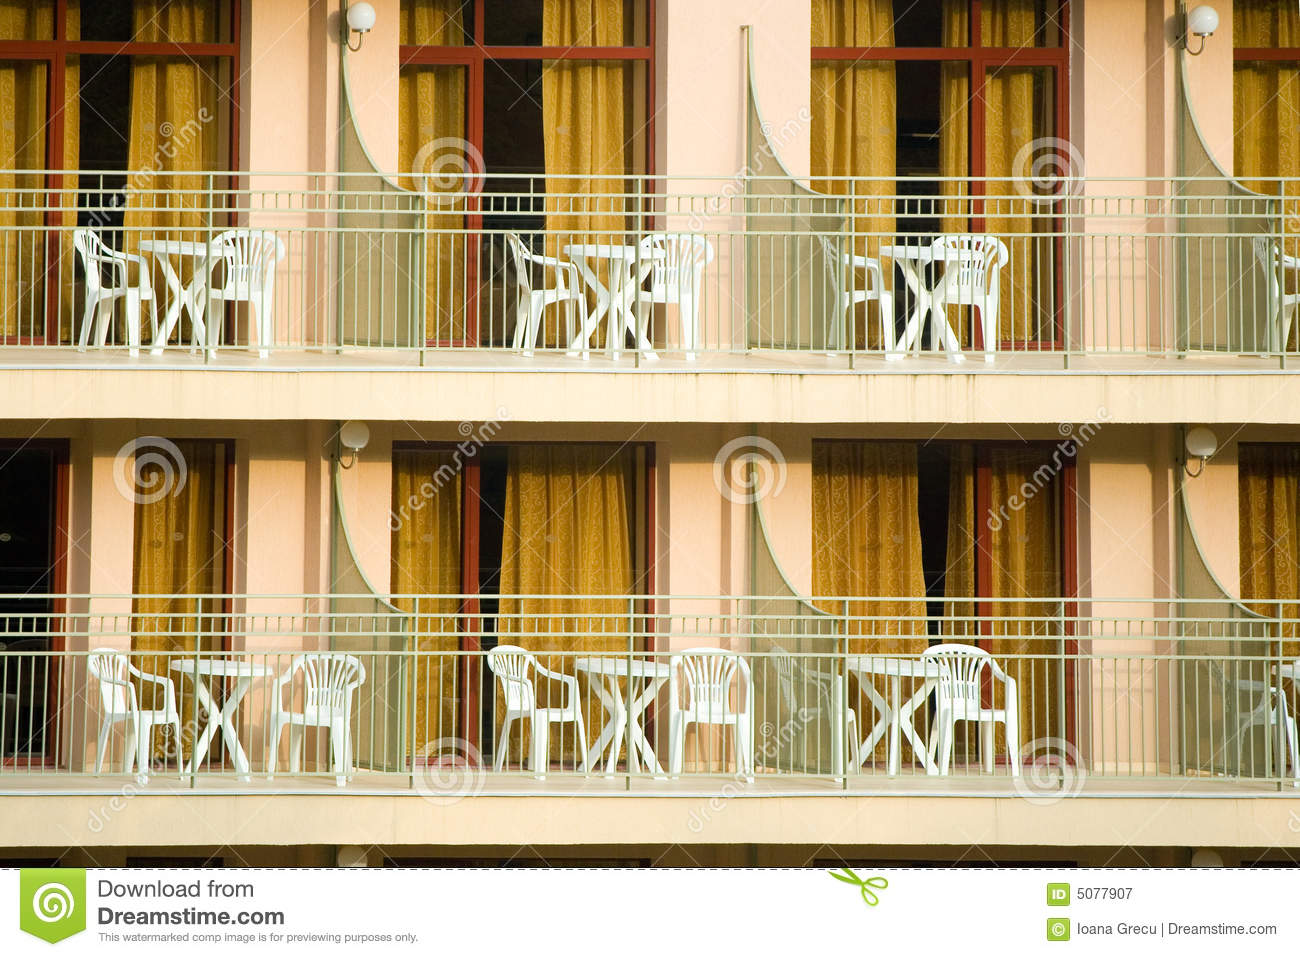 Hotel balconies royalty free stock photography image for Hotels with balconies